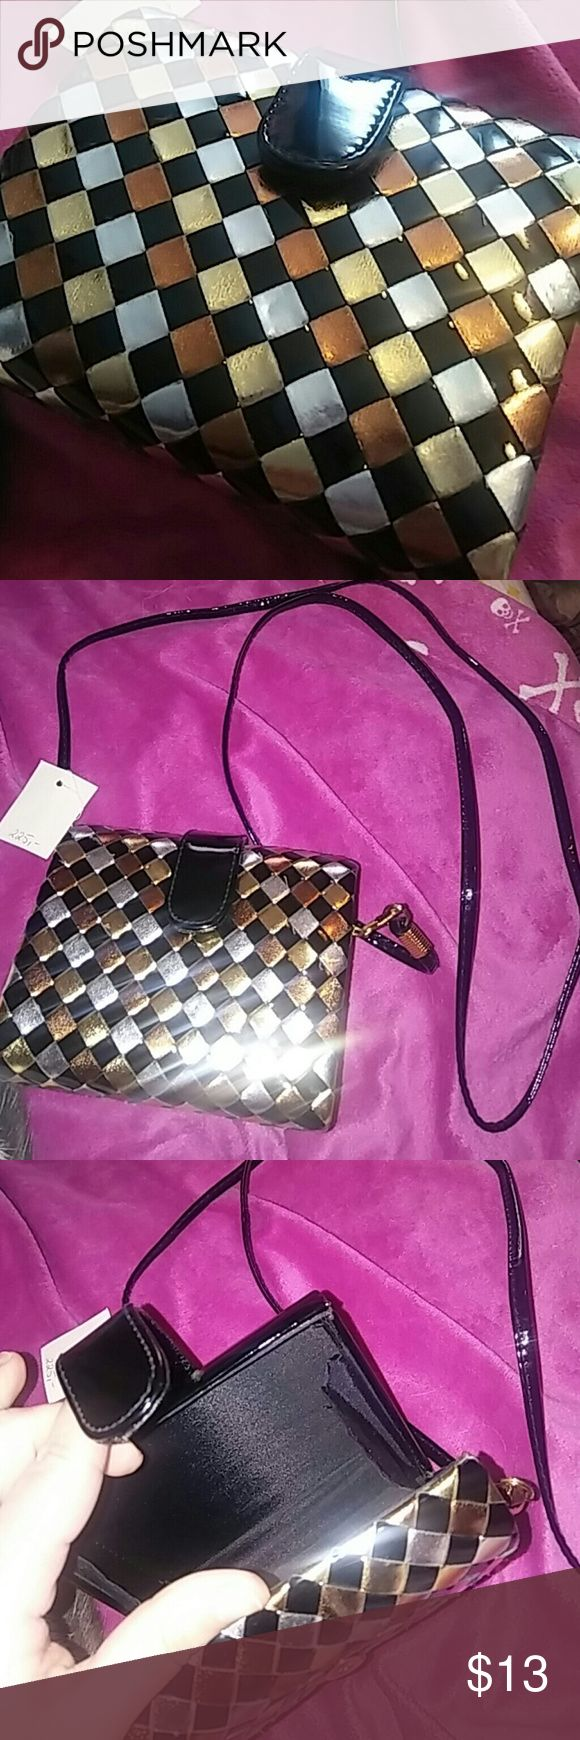 Vintage NWT Metallic Faux Leather Evening Bag Vintage/retro metallic faux leather bag. Small with a long removable strap. Mostly black with gold, bronze, and silver on front. New with tags. Vintage Bags Mini Bags